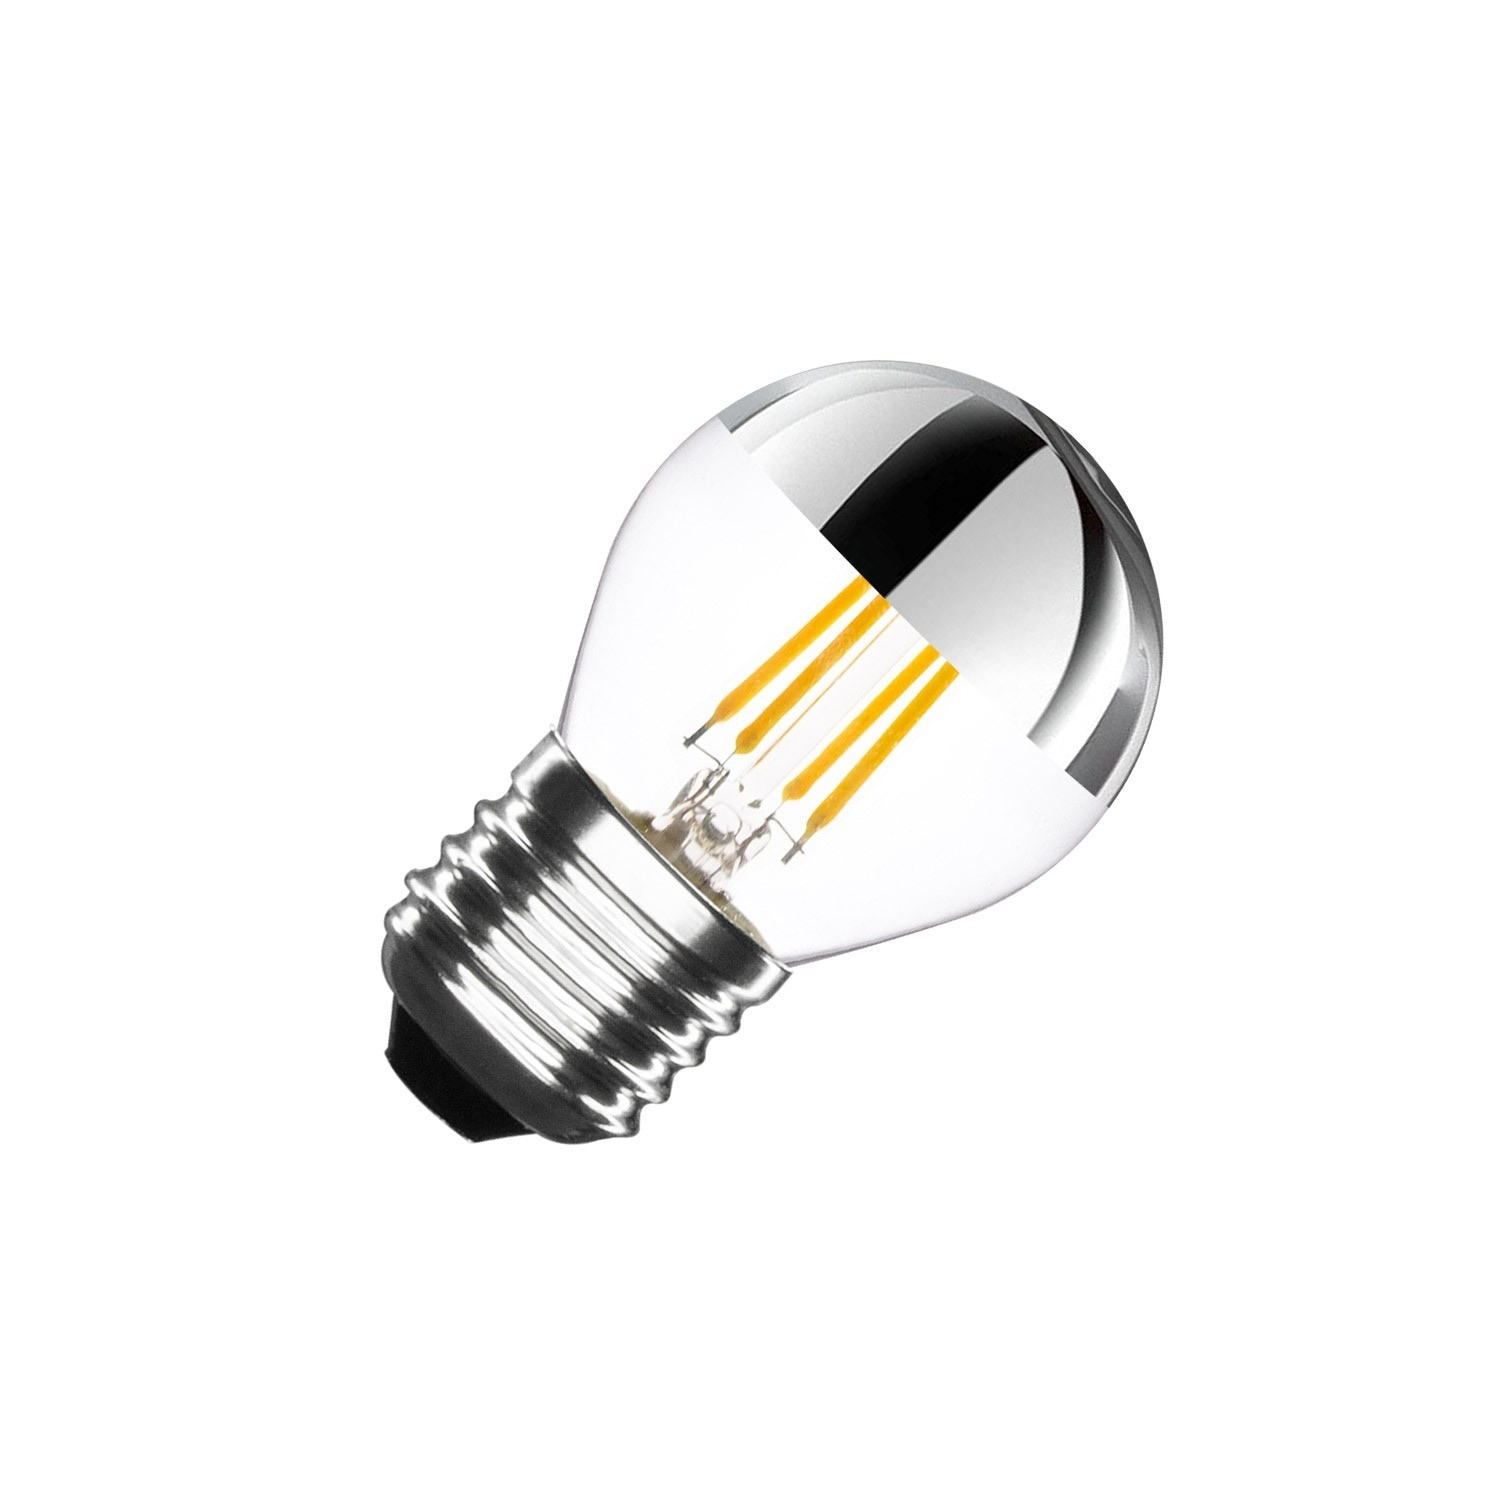 Led Birne E27 Dimmbar Mit Filament Reflect G45 3 5w Ledkia - Birne E27